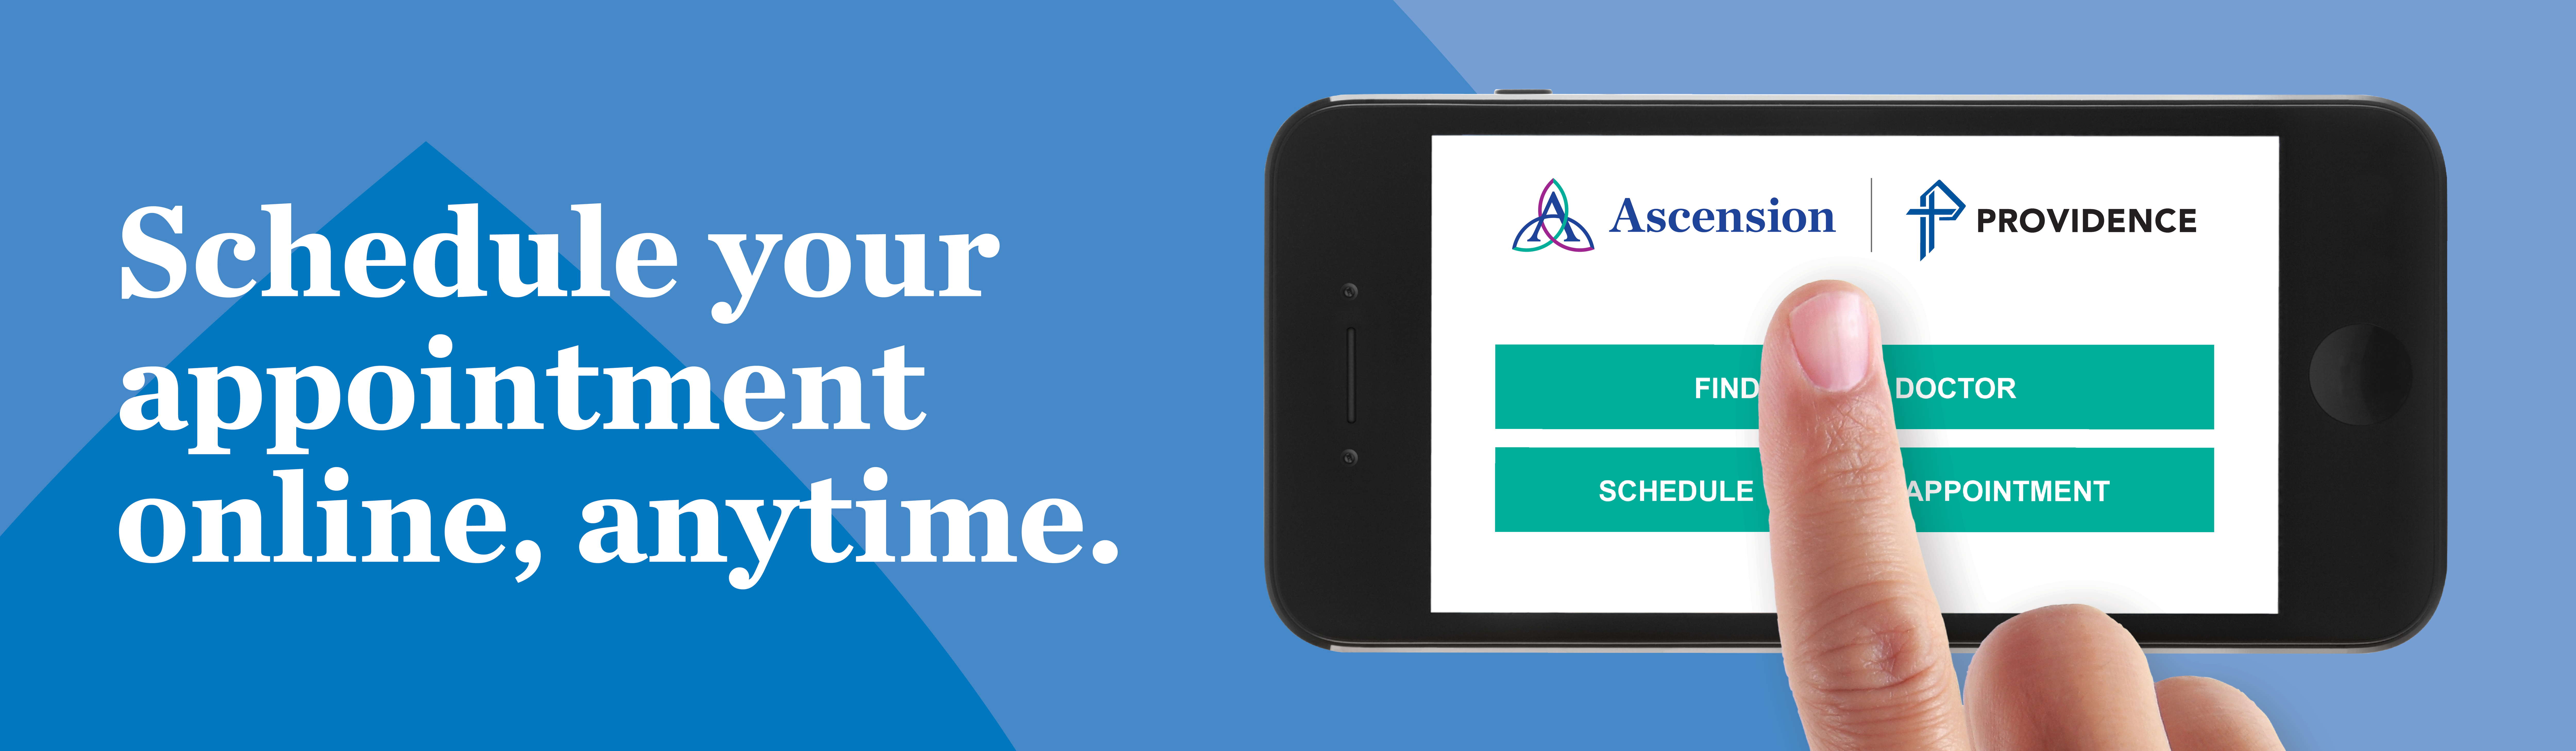 Why wait? Schedule online, anytime - Providence